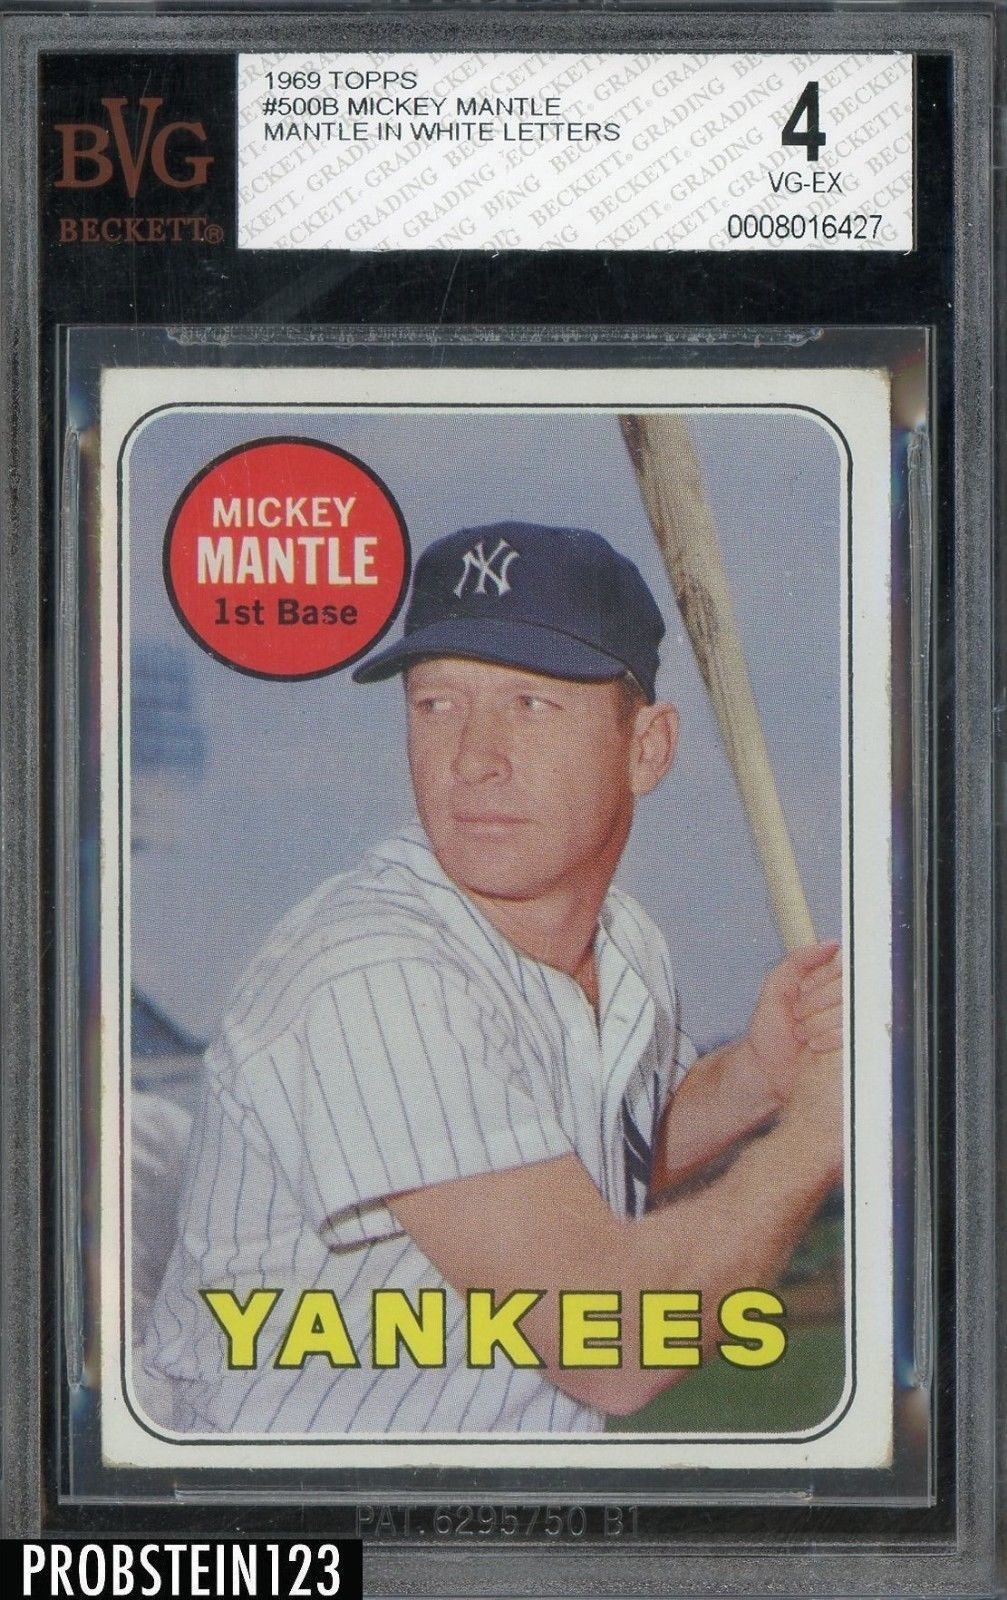 1969 Topps 500b Mickey Mantle Yankees Hof Mantle In White Letters Bvg 4 Baseballcards Mickey Mantle Old Baseball Cards Baseball Cards